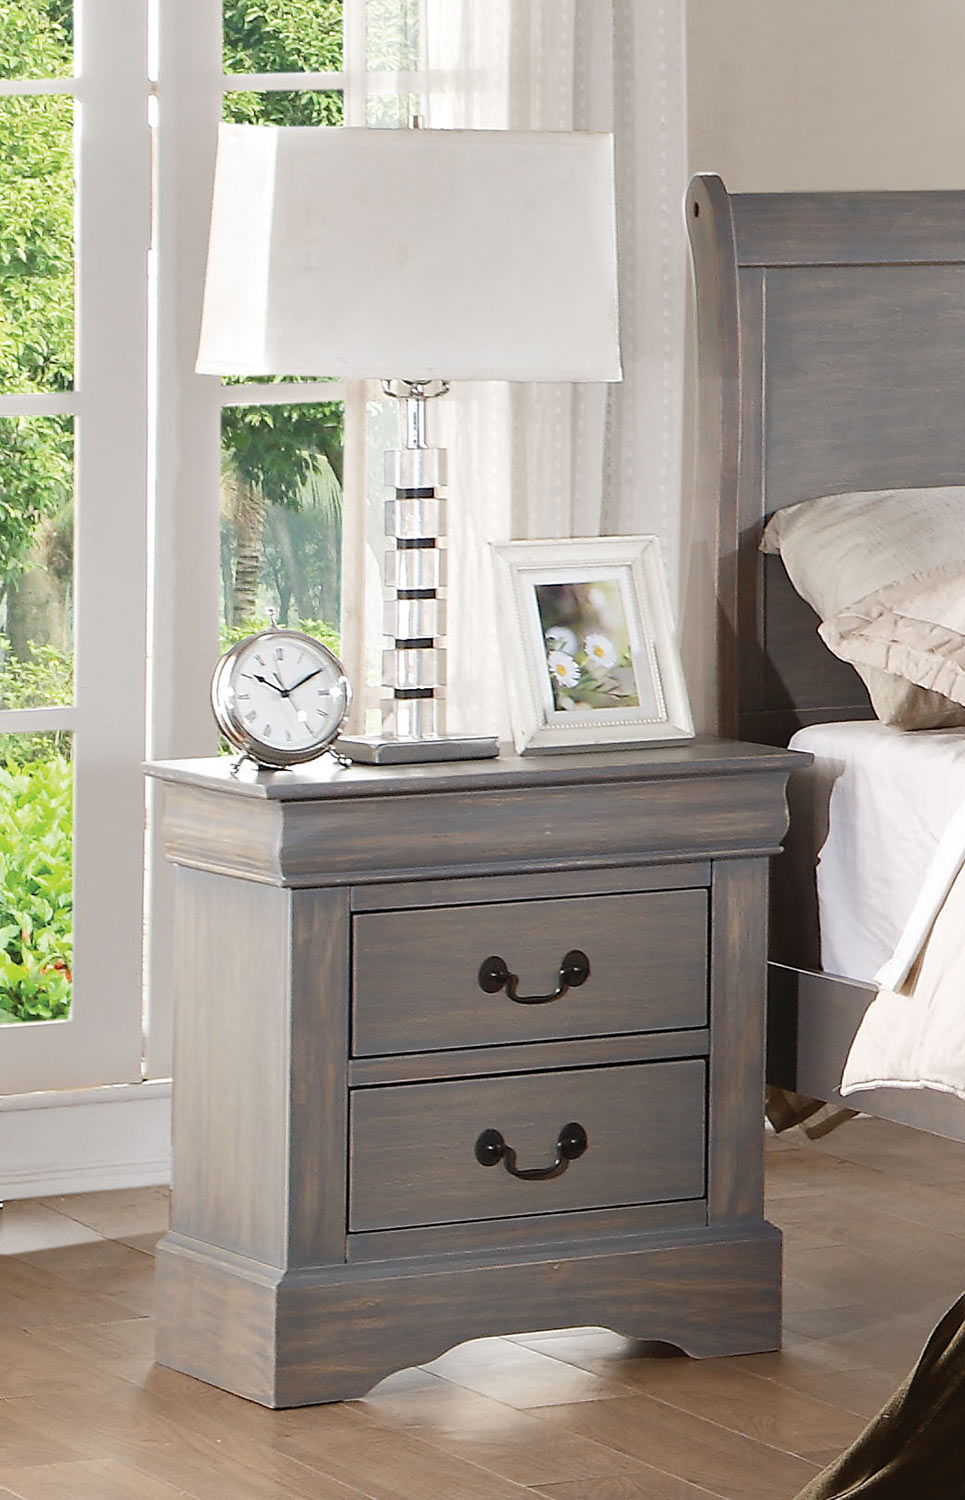 Acme Louis Philippe III Nightstand - Antique Gray